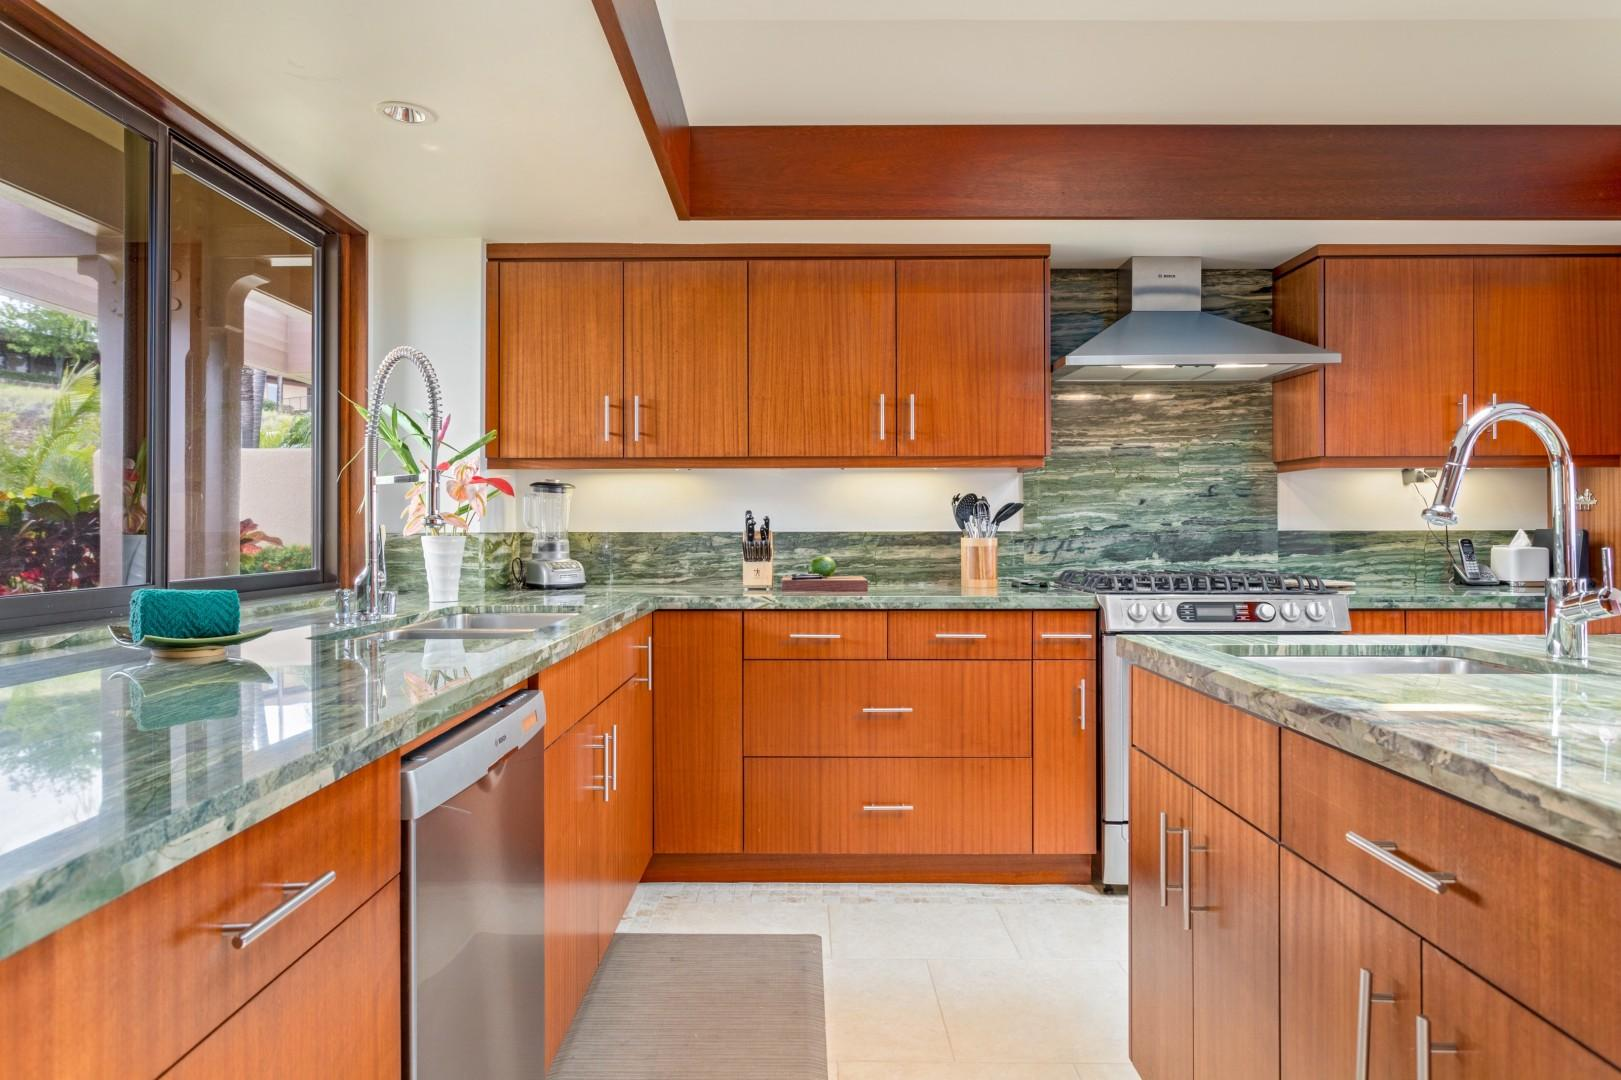 Two ovens, three sinks, endless counter space, and ocean views!